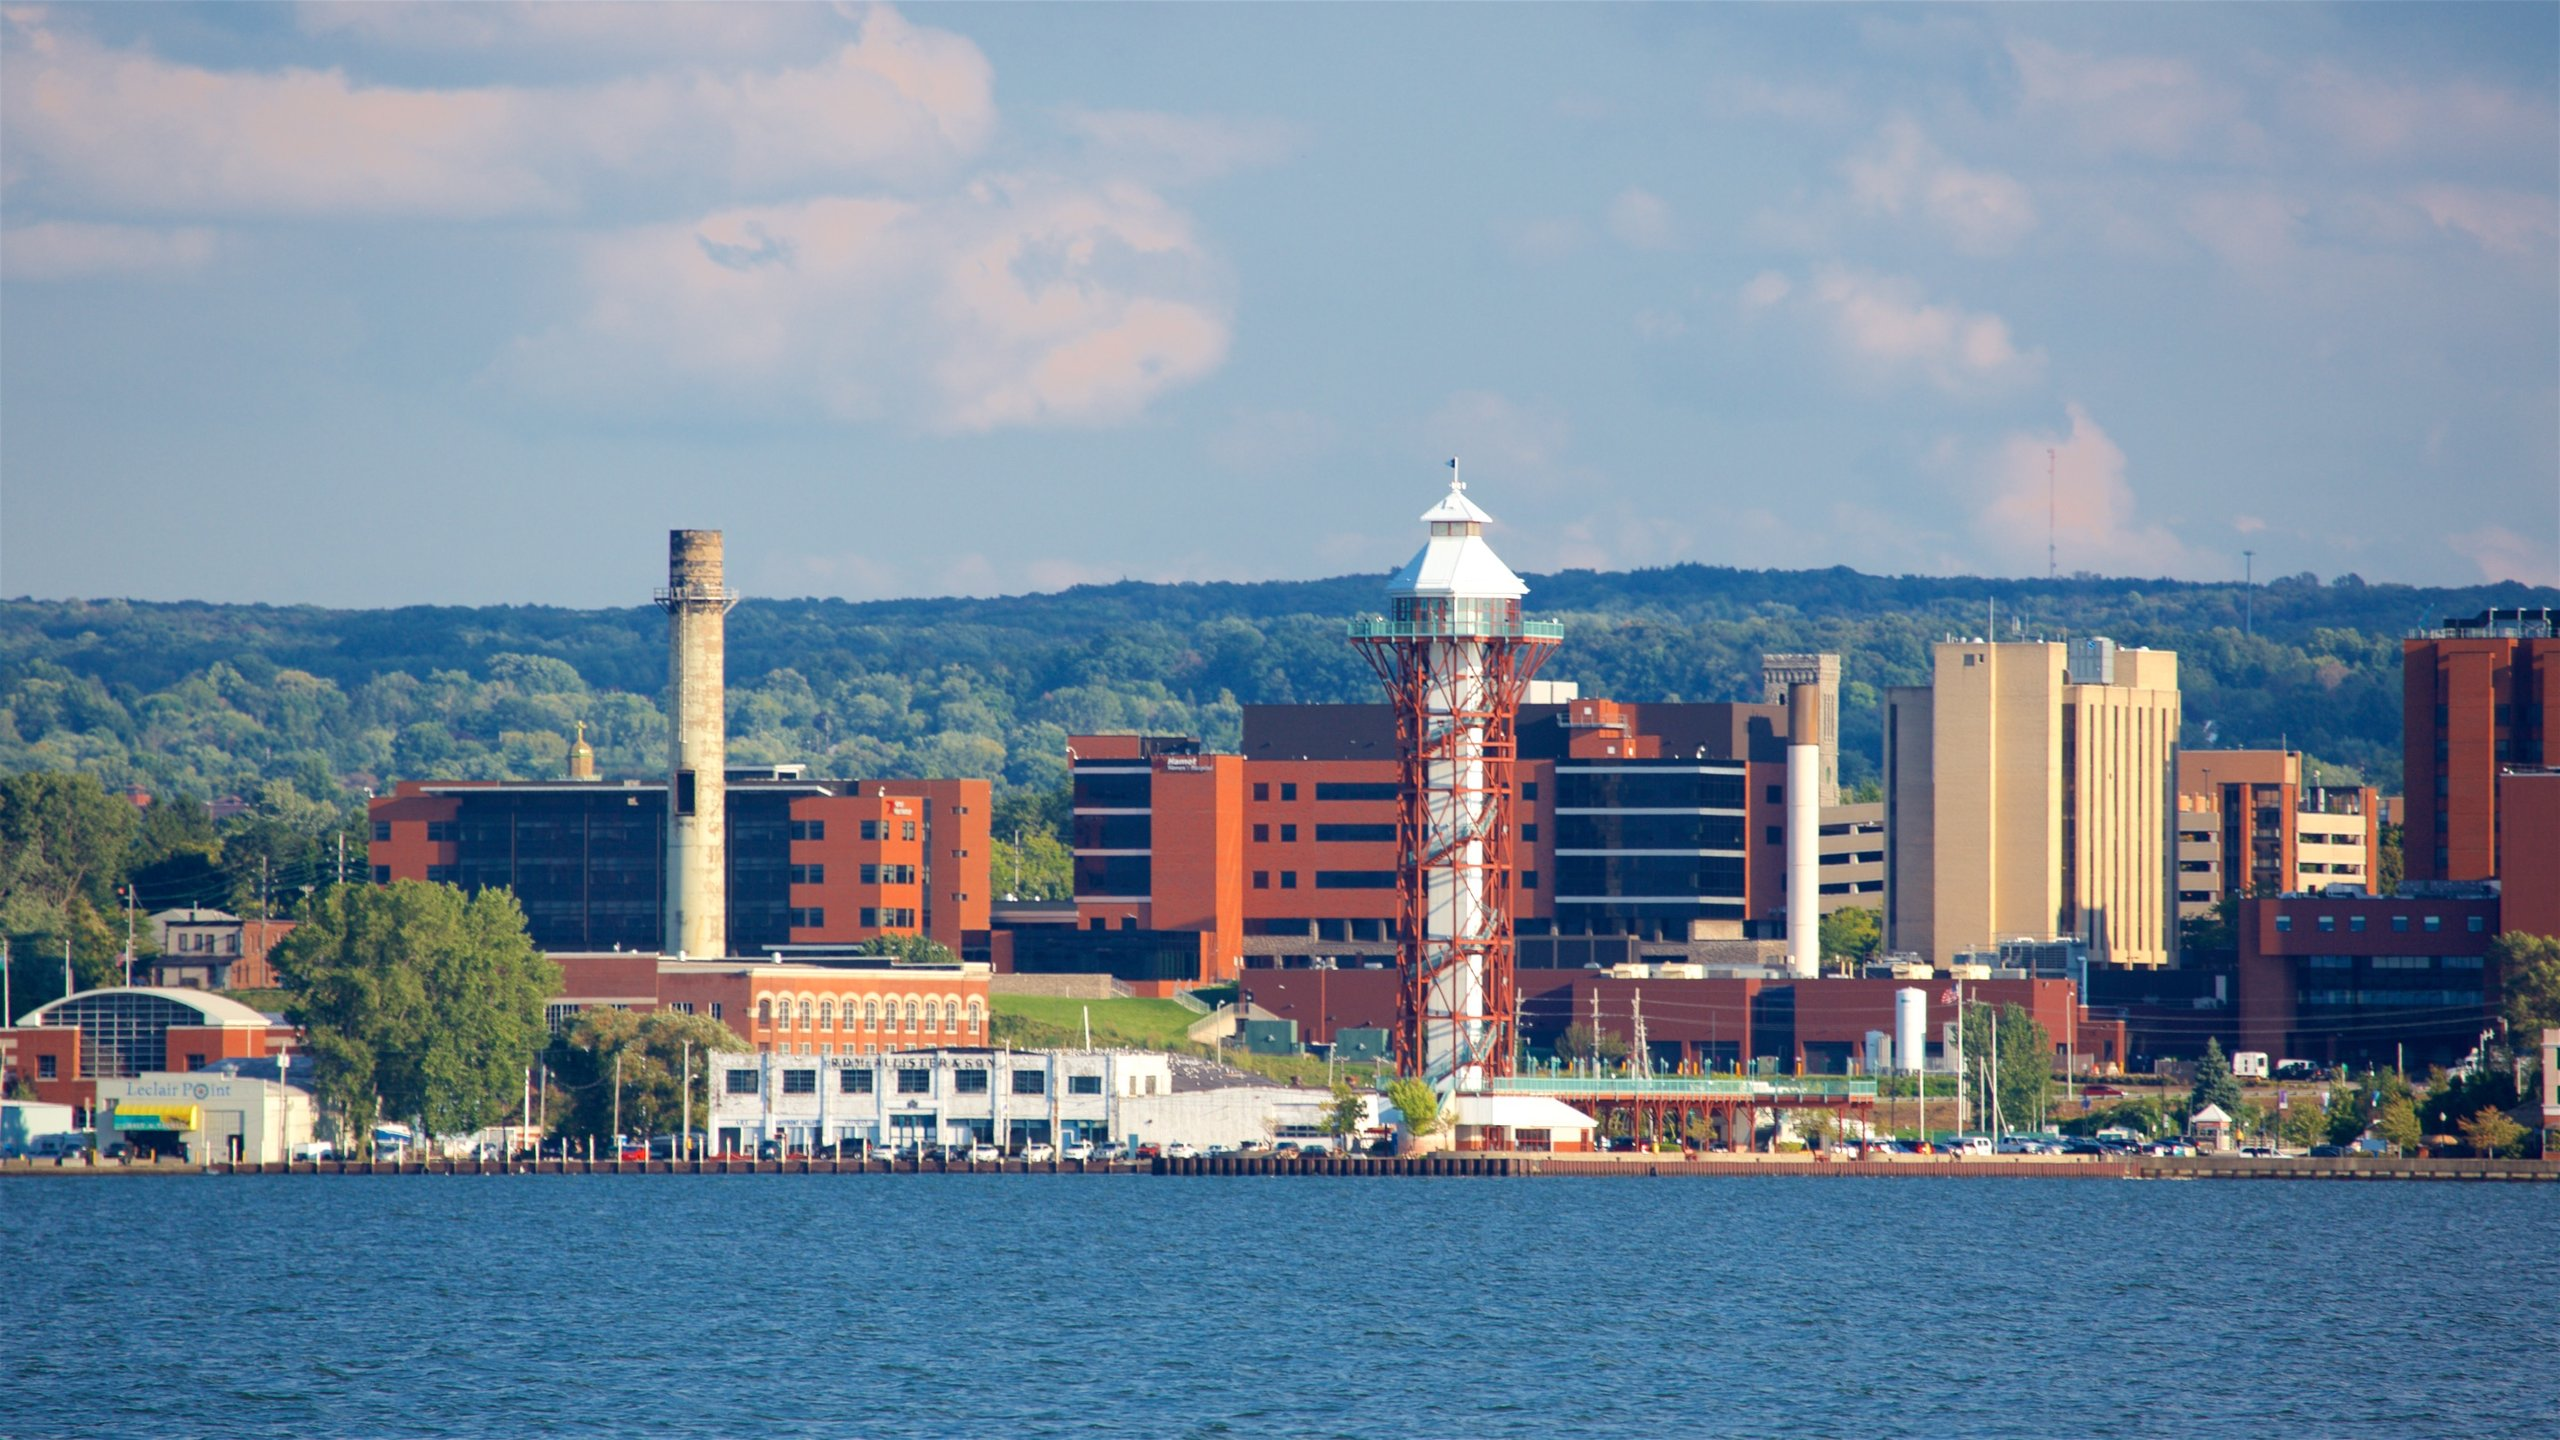 Cheap Hotels in Erie - Find $49 Hotel Deals   Travelocity